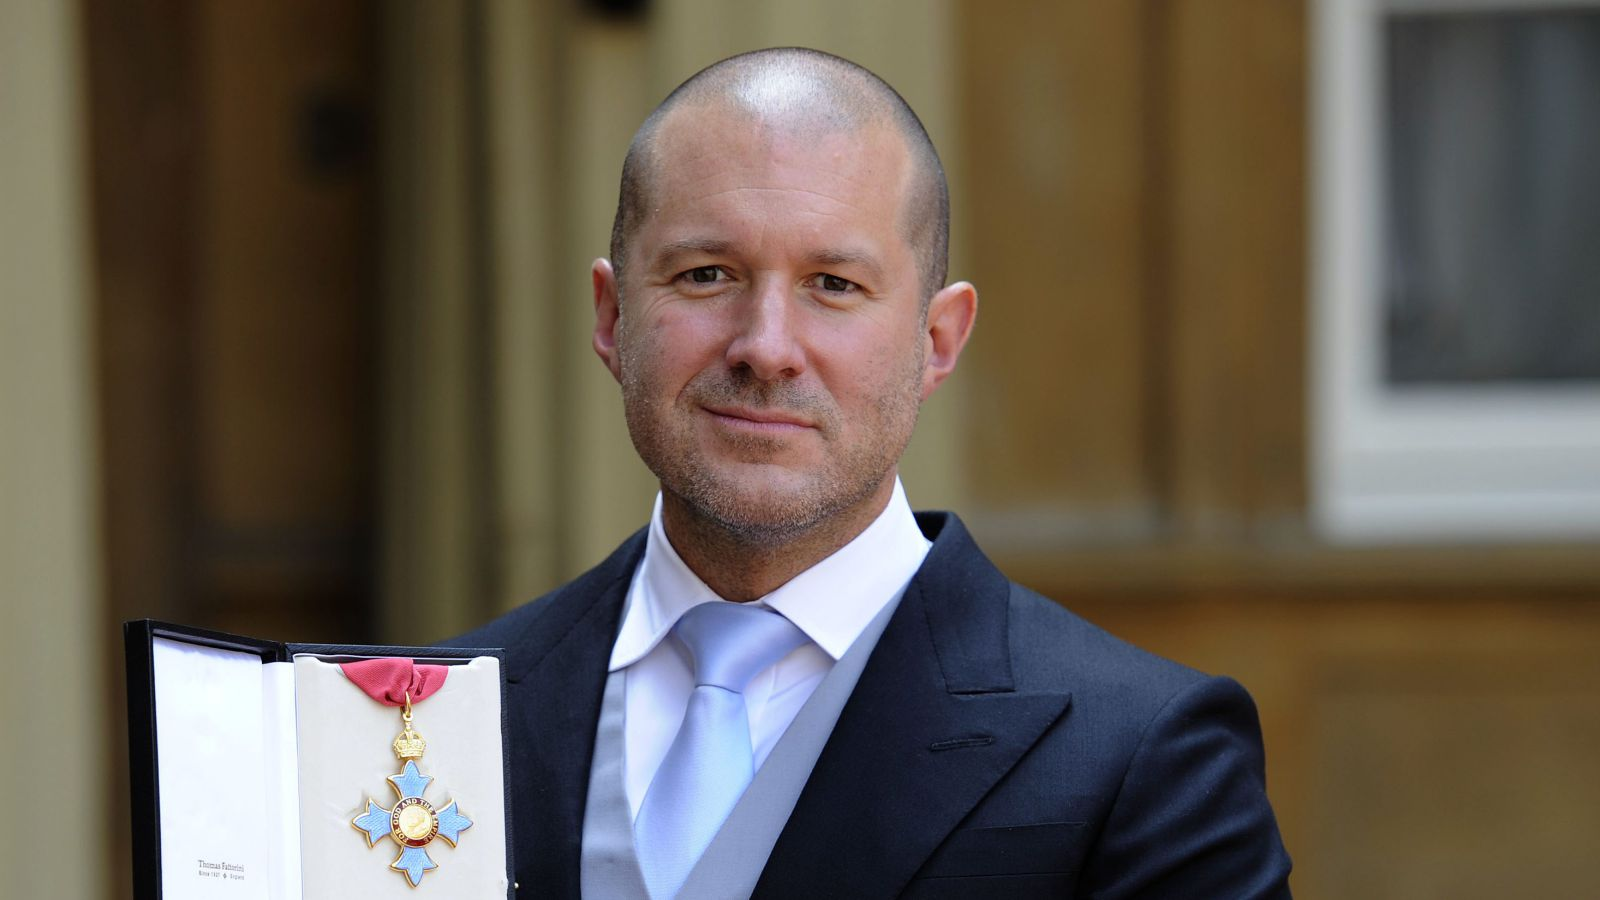 Sir Jony Ive accepting a medal for Royal Chancellor.